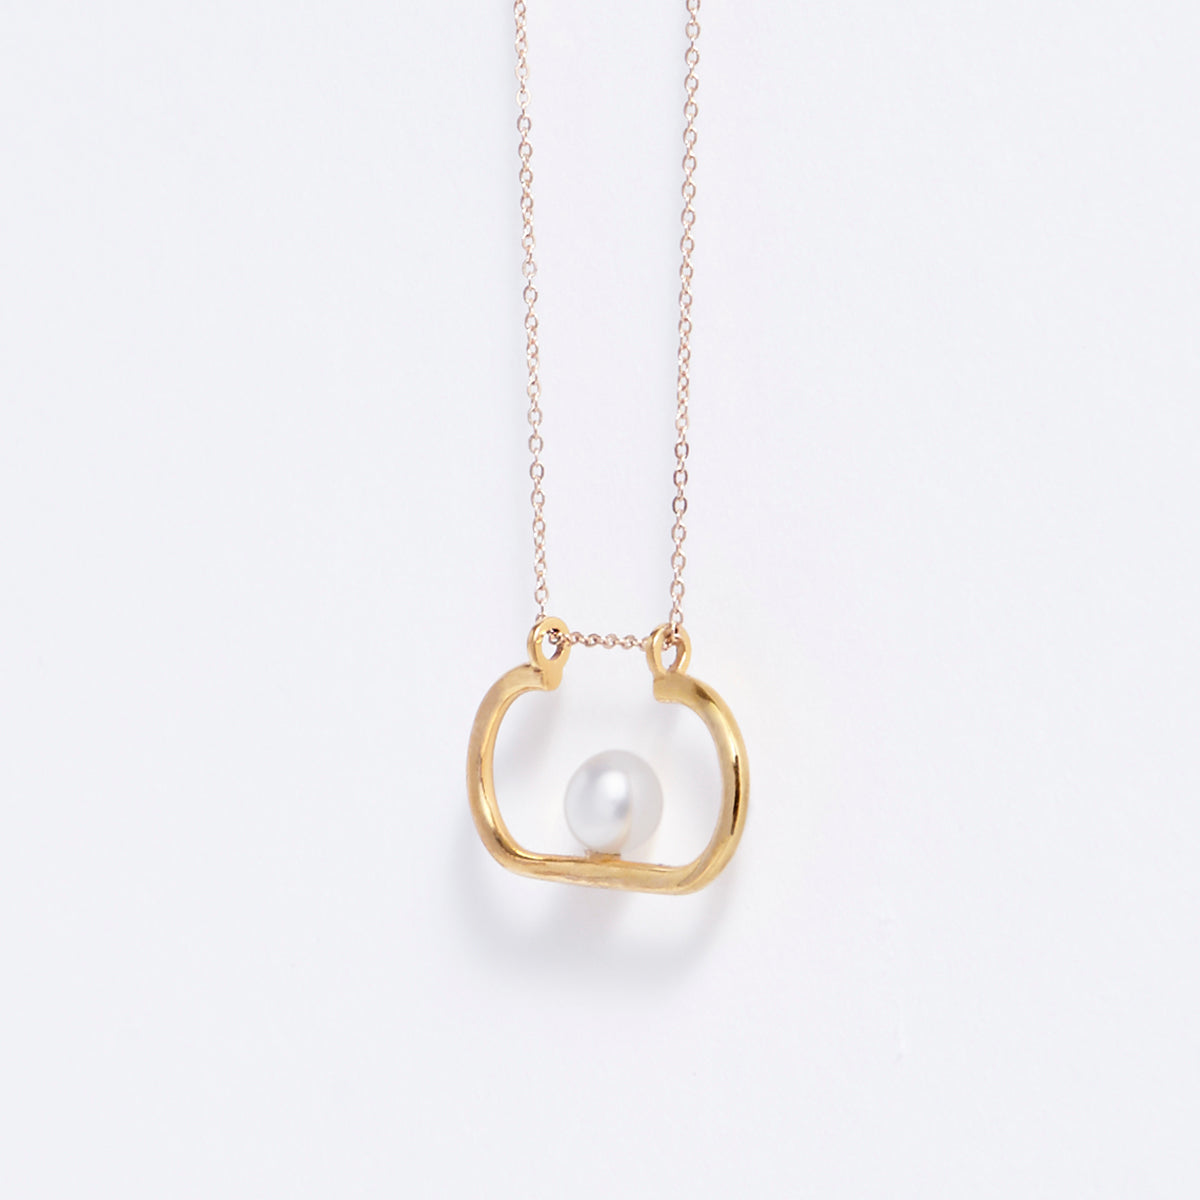 Metalepsis minimal modernist pearl Ito necklace 14k gold